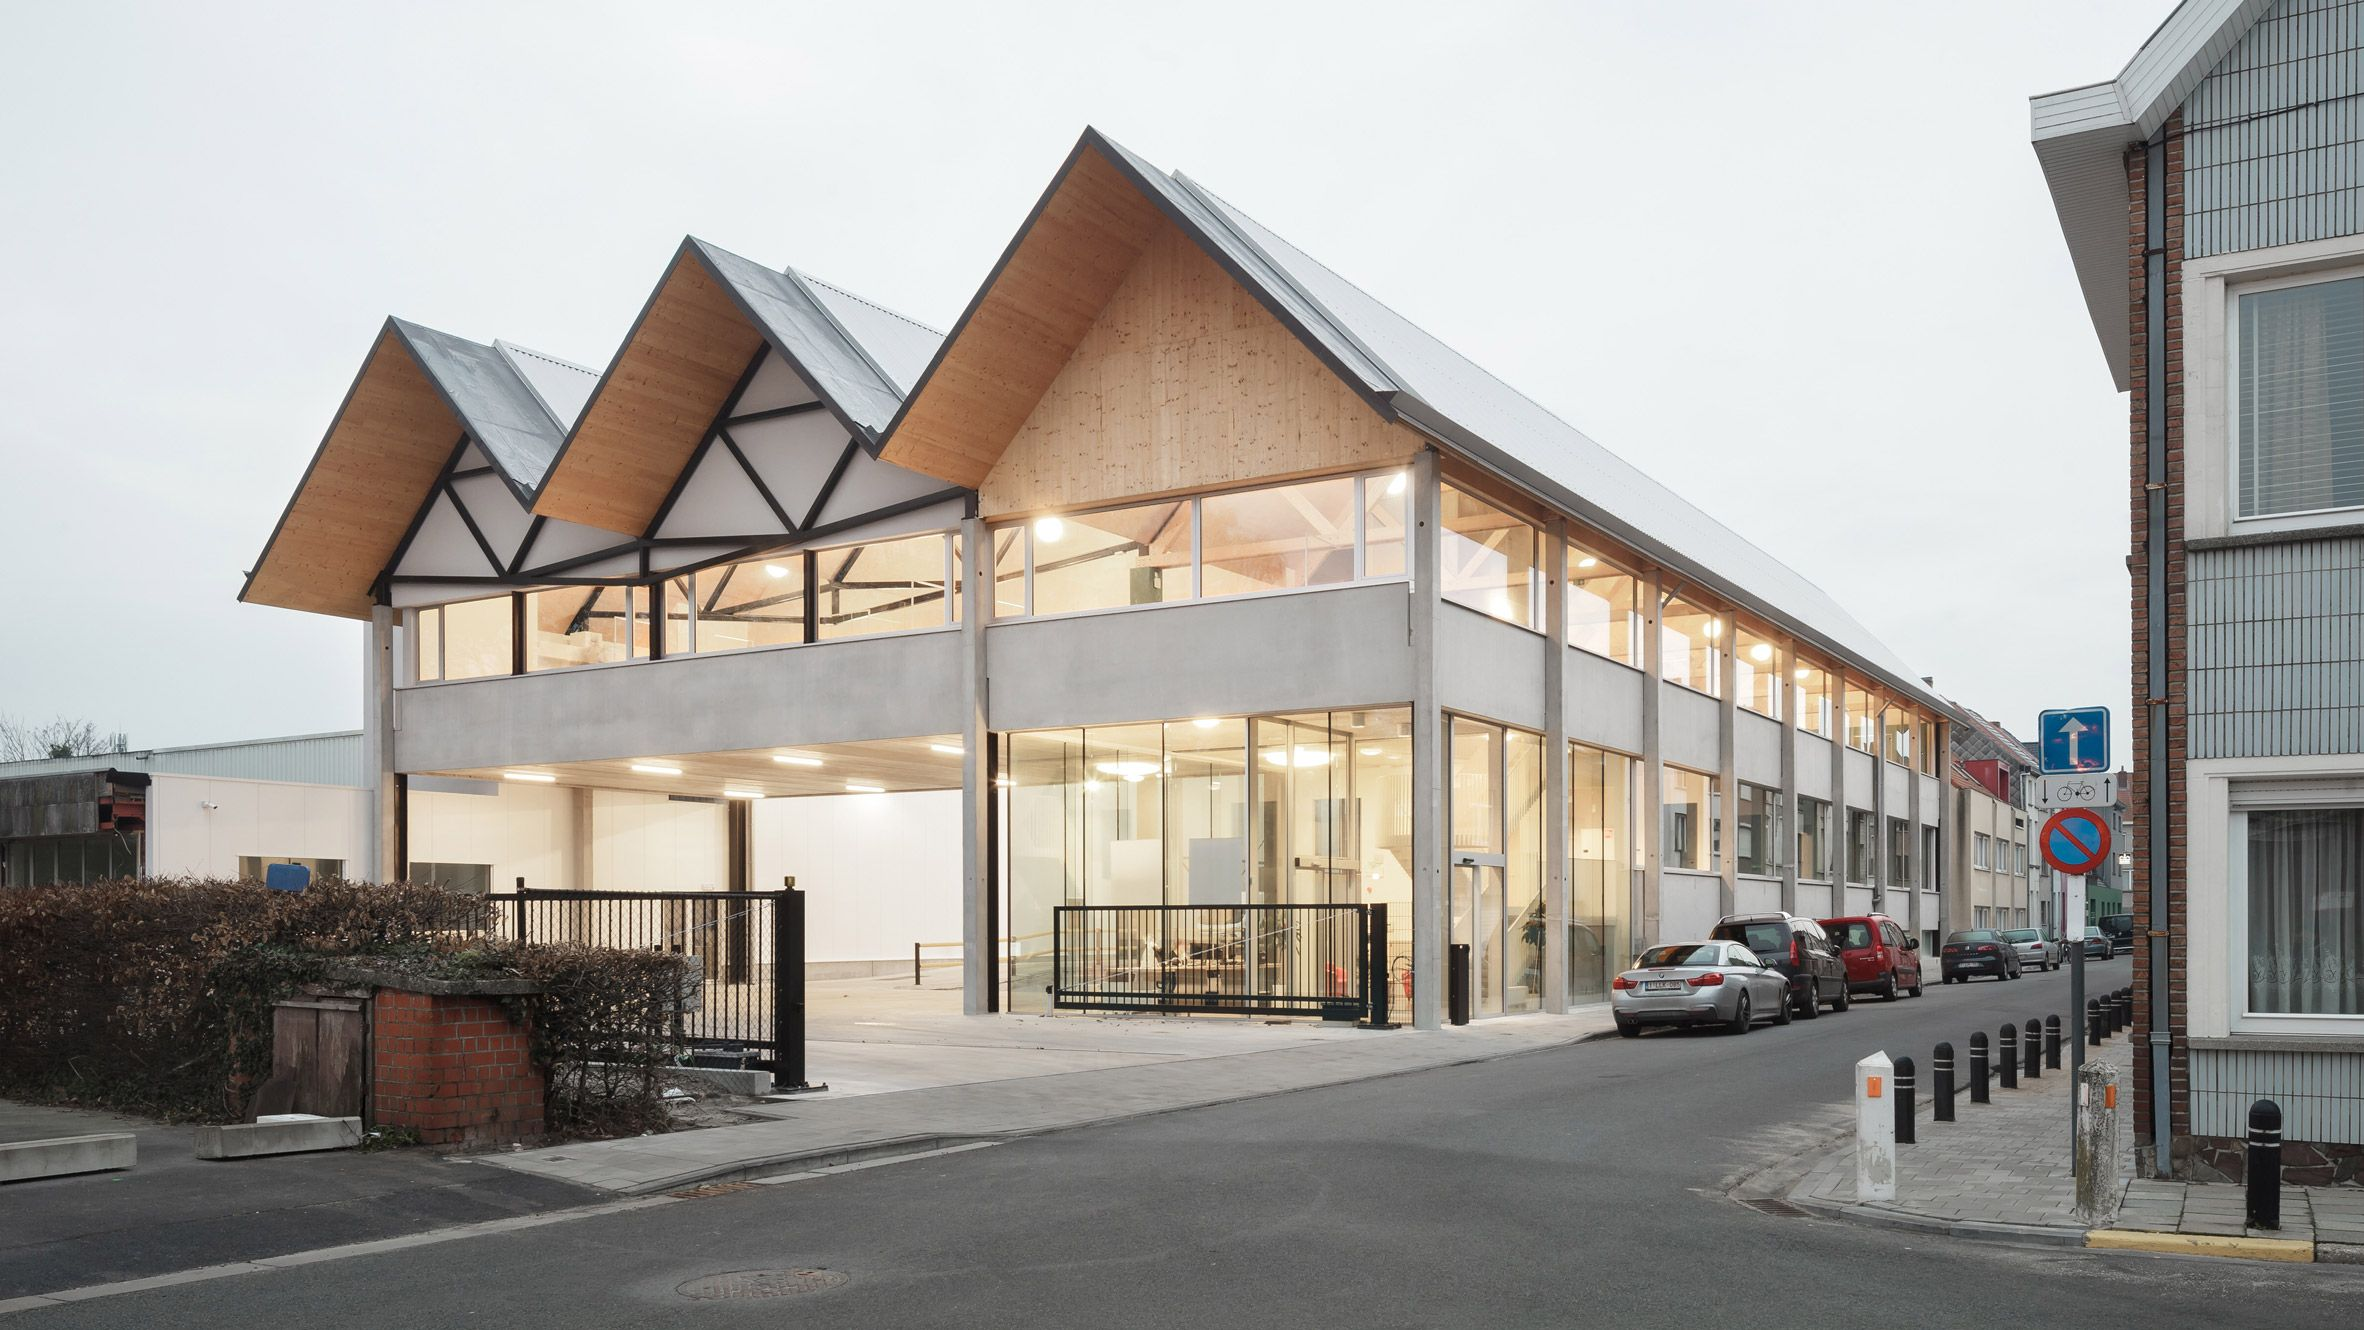 Local Architecture Studio Trans Has Rebuilt A Factory In A Residential Neighbourhood Of Ghent With Pitched Roofs Re Architecture Roof Design Roof Architecture